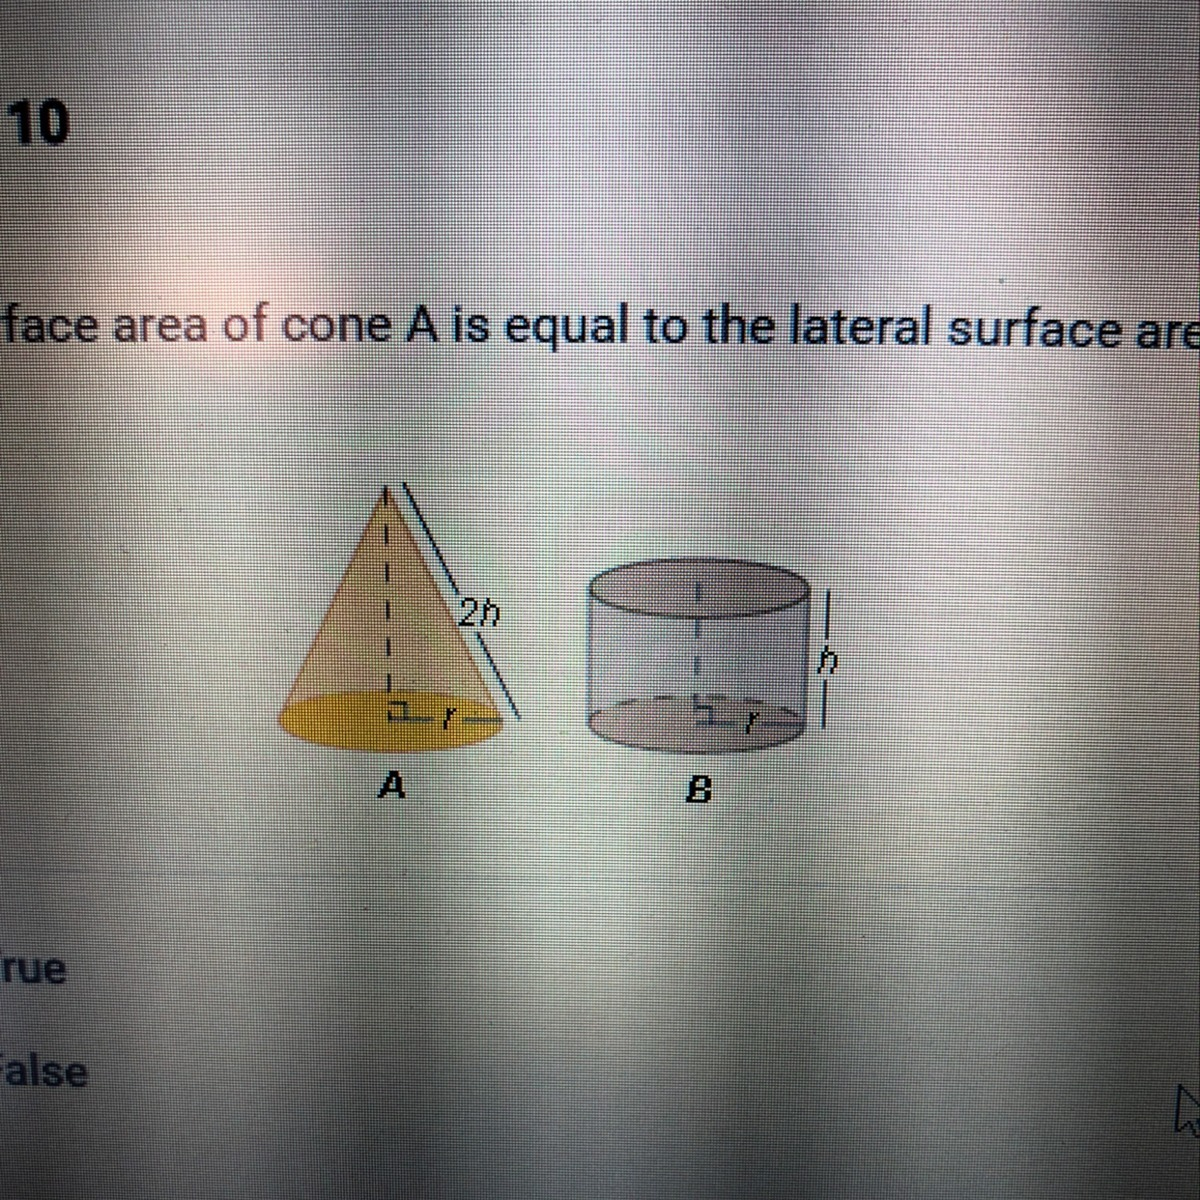 The Lateral Surface Area Of Cone A Is Equal To The Lateral